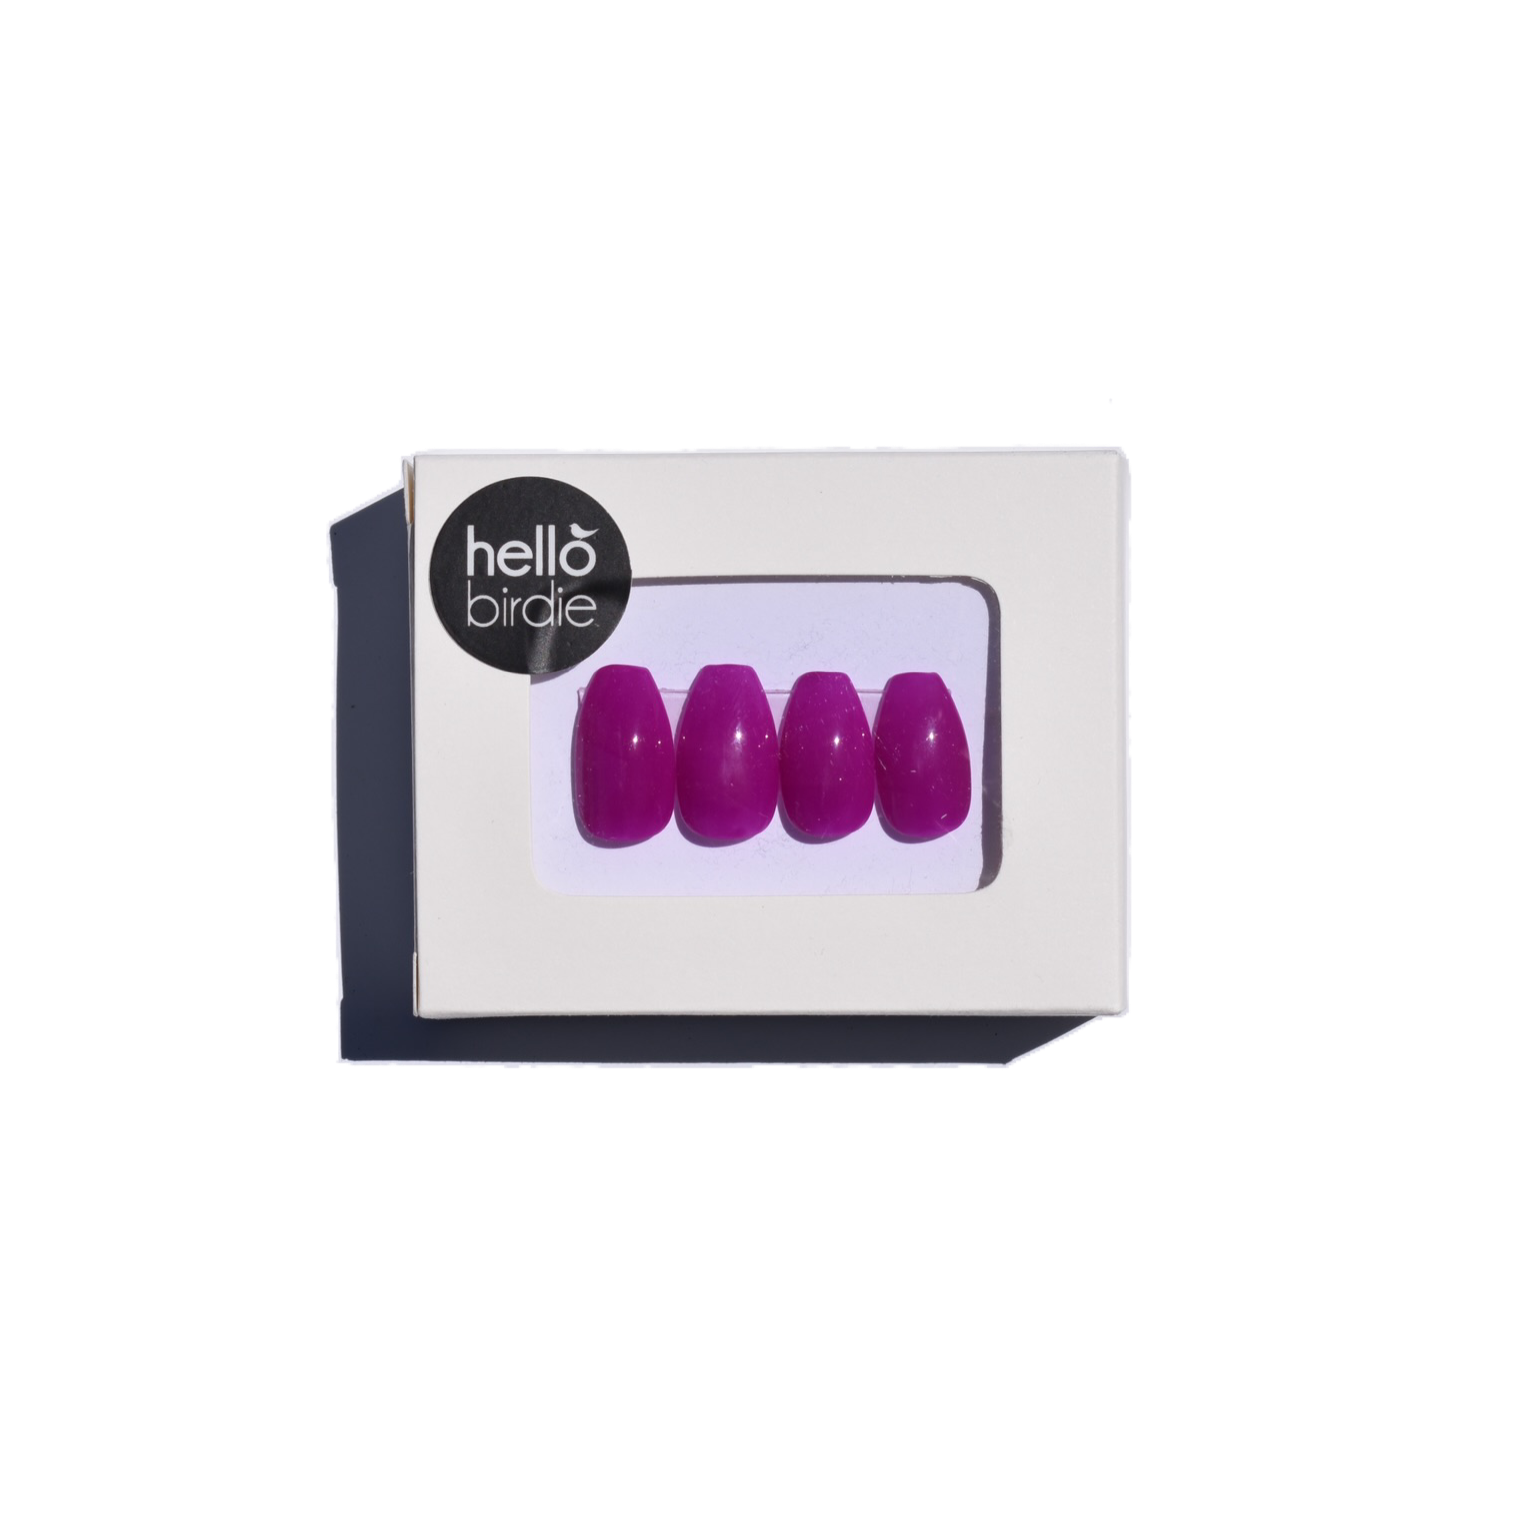 Four press-ons packaged in a rectangular box with a Hello Birdie logo on the top left corner.  A window with rounded corners allows you to view the fuschia gloss coffin shaped nails.